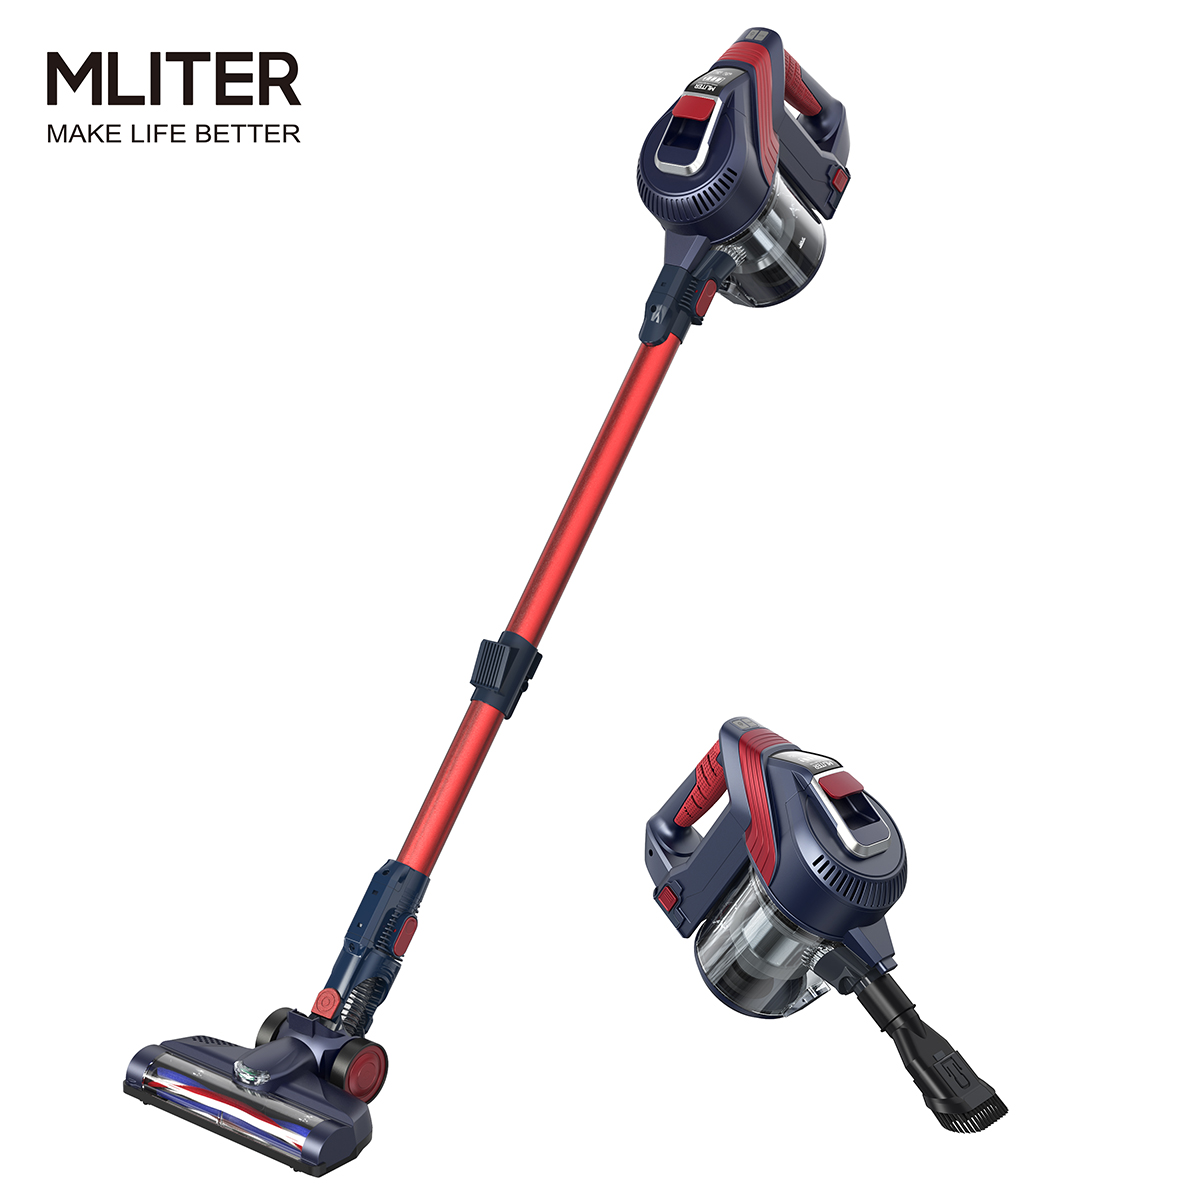 mliter 2in1 cordless vacuum cleaner 7500pa handheld upright stick bagless vac a 667016853626 ebay. Black Bedroom Furniture Sets. Home Design Ideas